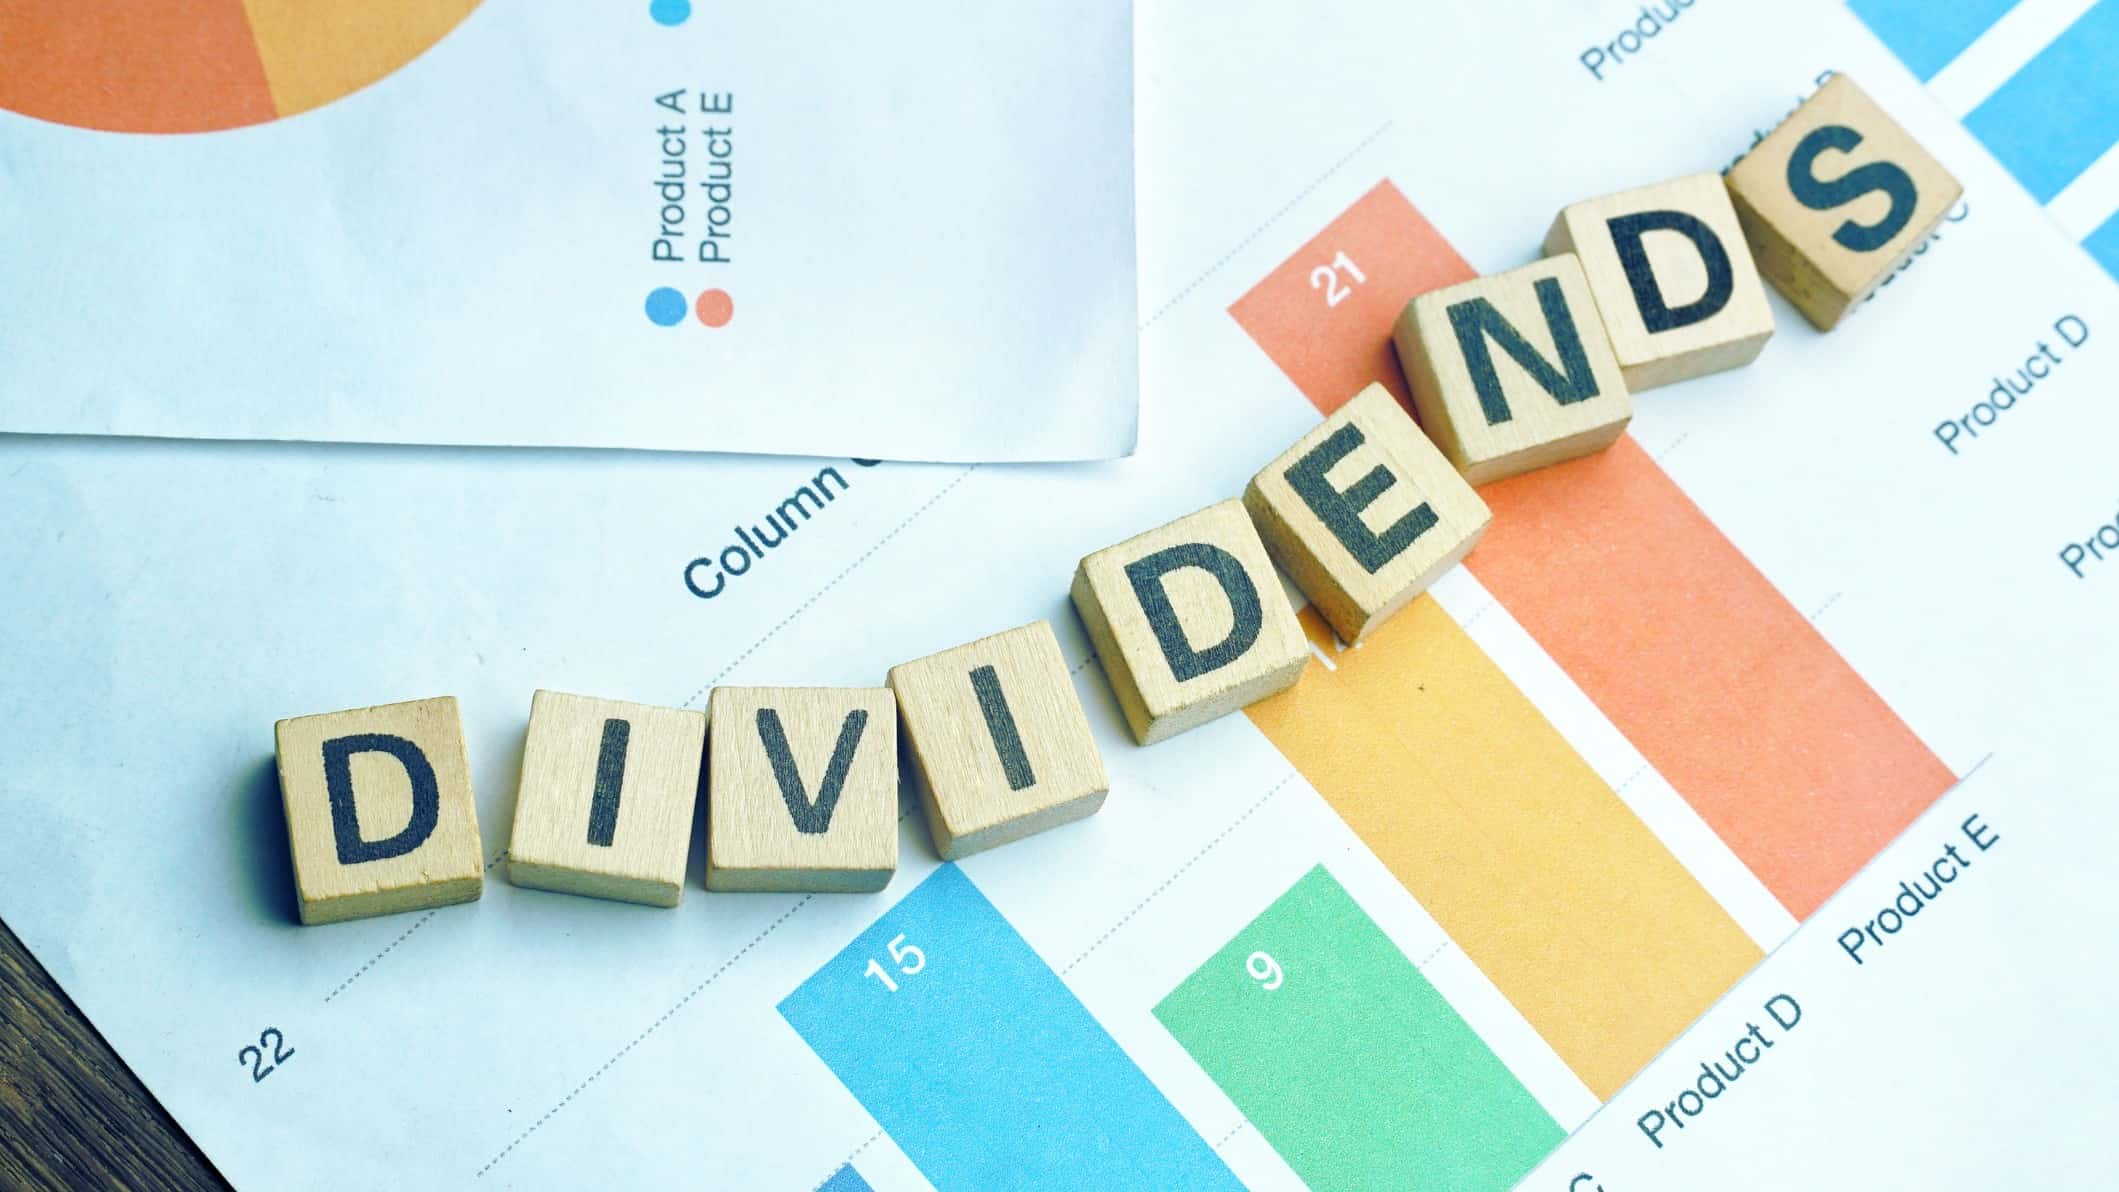 blockletters spelling dividends bank yield